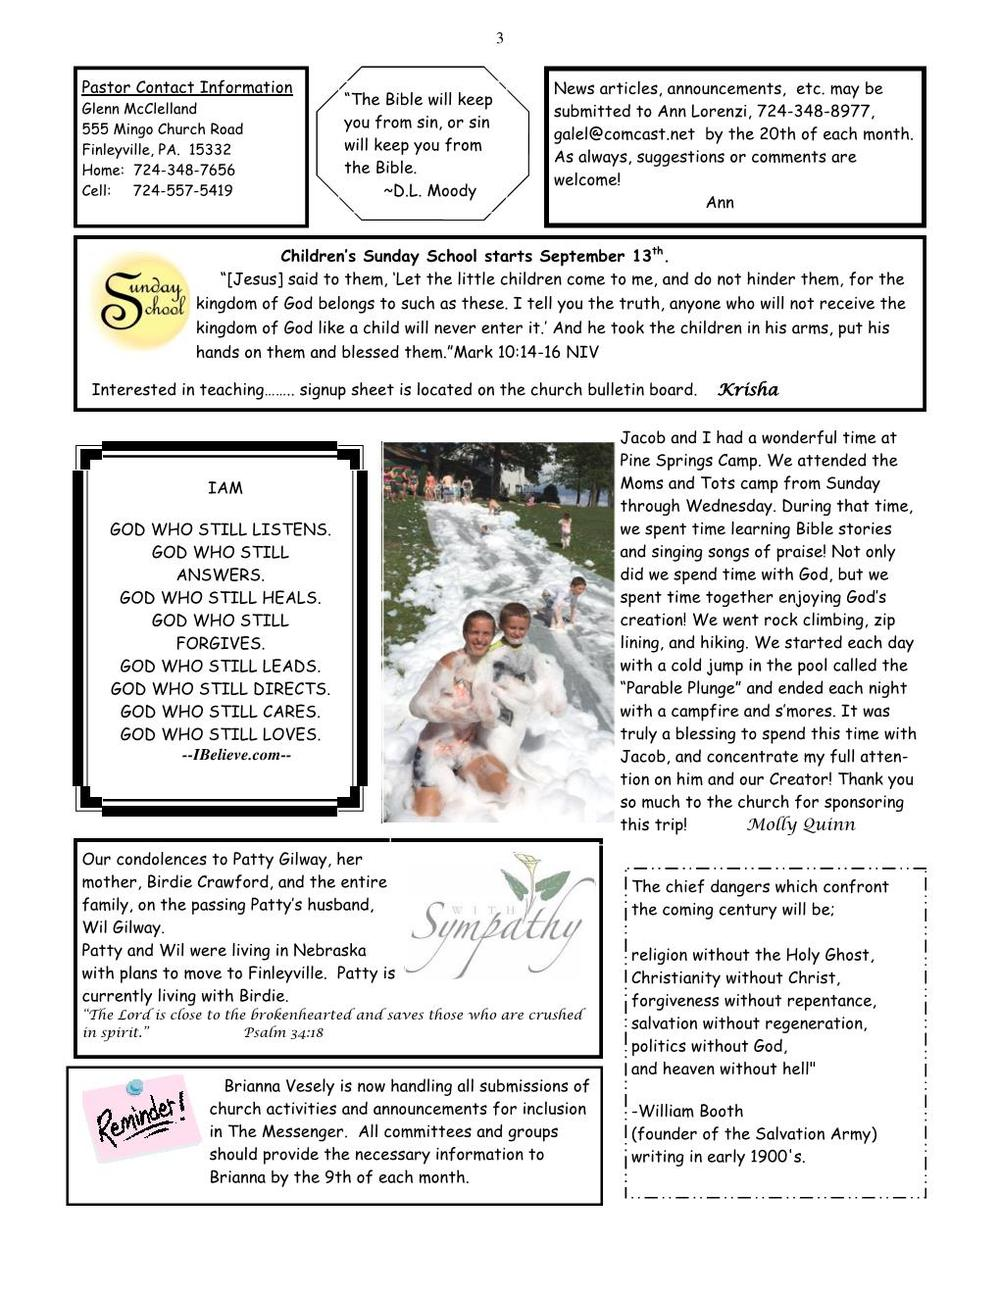 SEPTEMBER NEWSLETTER Page 003.jpg